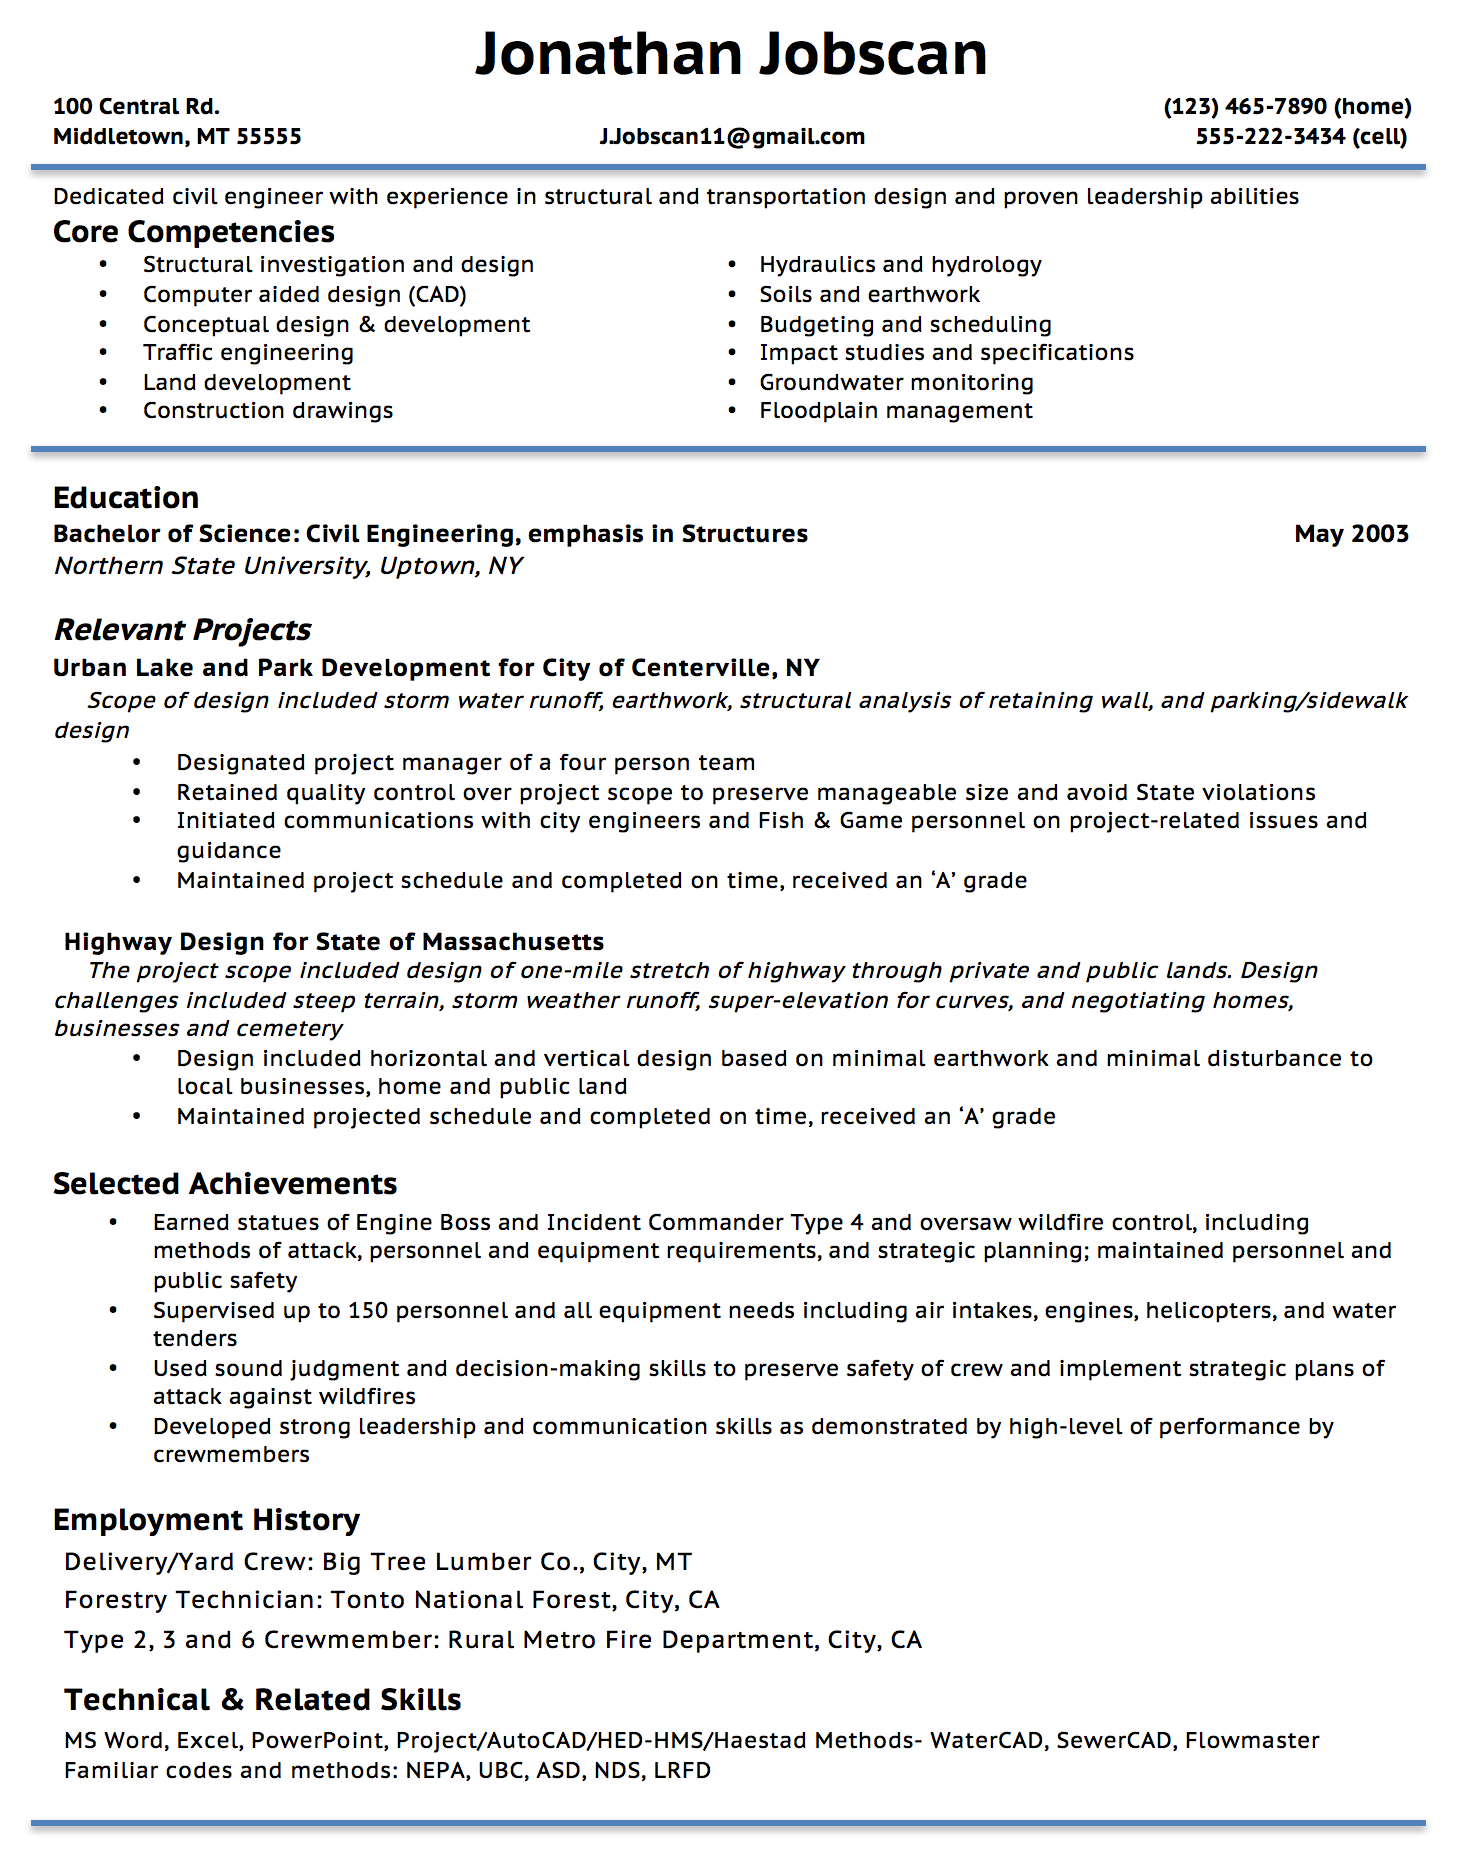 Opposenewapstandardsus  Pleasing Resume Writing Guide  Jobscan With Marvelous Example Of A Functional Resume Format With Cute Sap Resume Also Example Of A Resume For A Job In Addition Best Words To Use On Resume And French Resume As Well As Creat A Resume Additionally Musical Theater Resume From Jobscanco With Opposenewapstandardsus  Marvelous Resume Writing Guide  Jobscan With Cute Example Of A Functional Resume Format And Pleasing Sap Resume Also Example Of A Resume For A Job In Addition Best Words To Use On Resume From Jobscanco